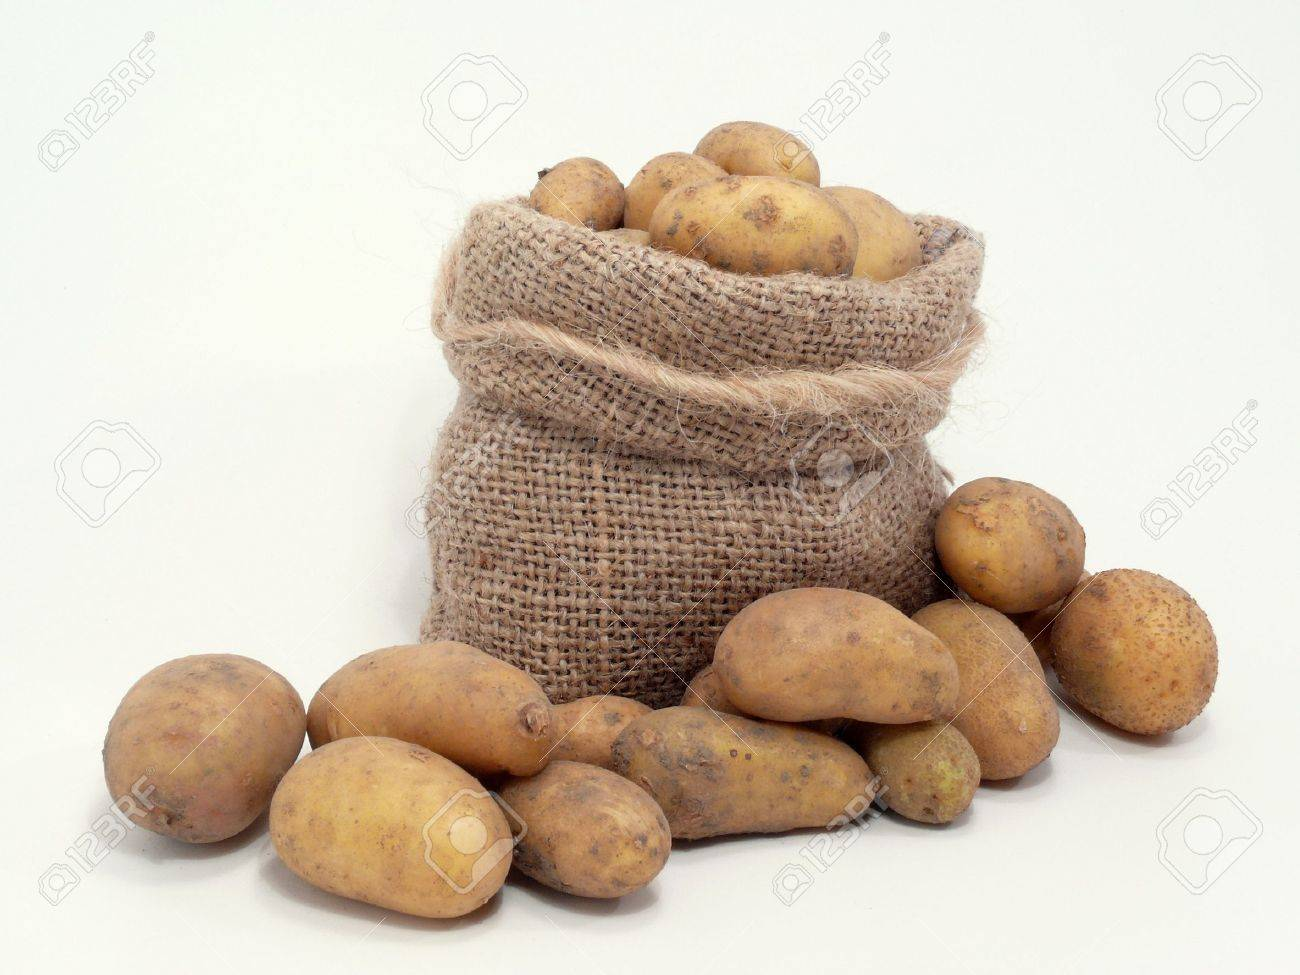 Potatoes In The Bag Stock Photo